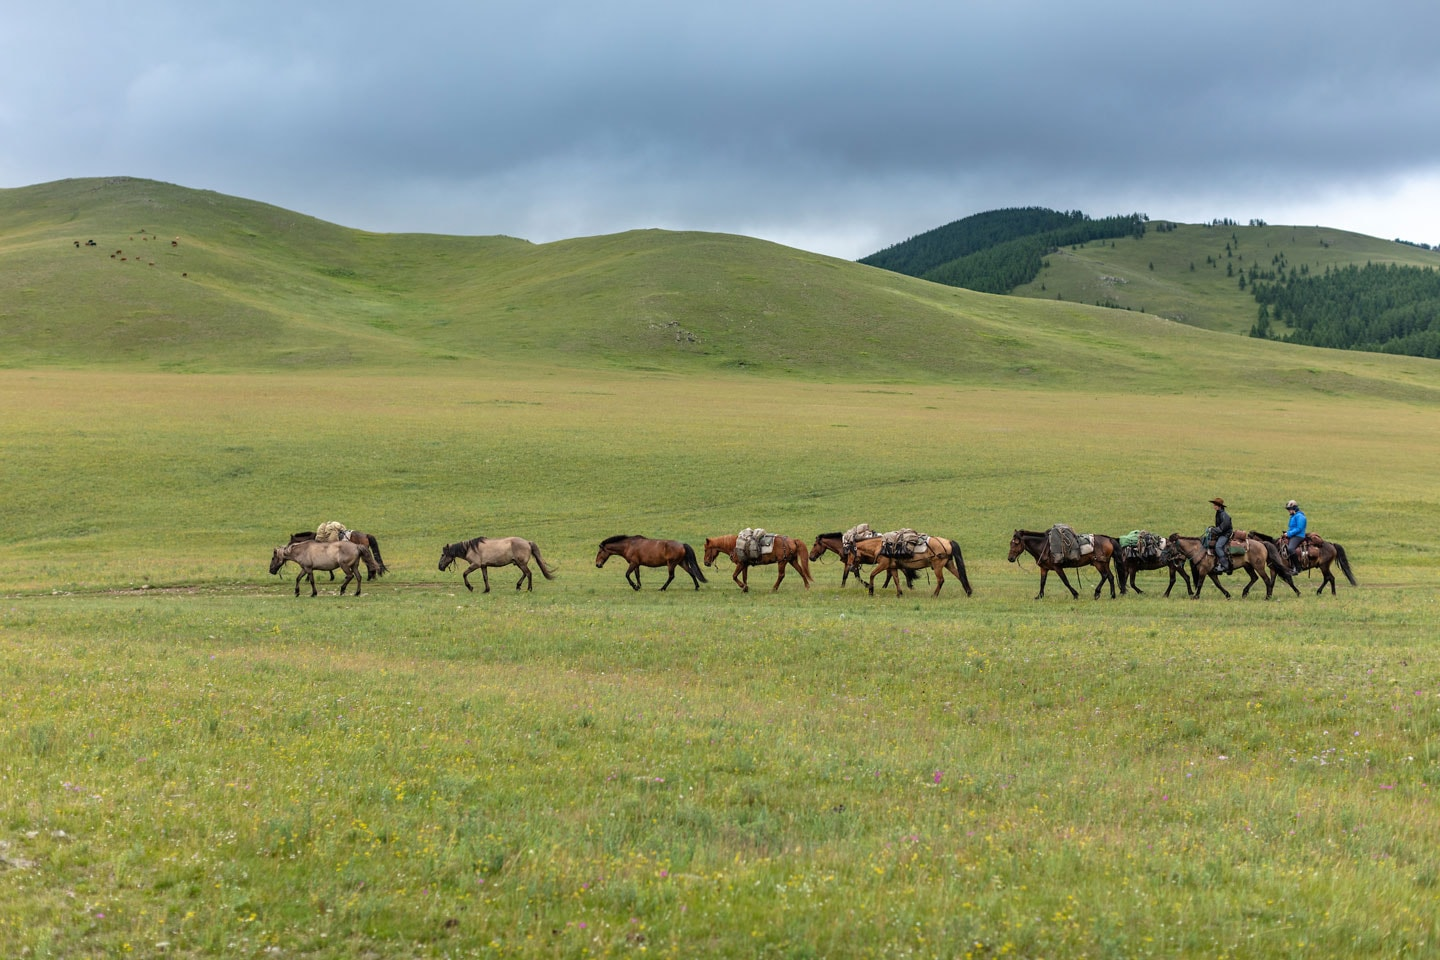 stonehorse horsetrail expedition mongolia